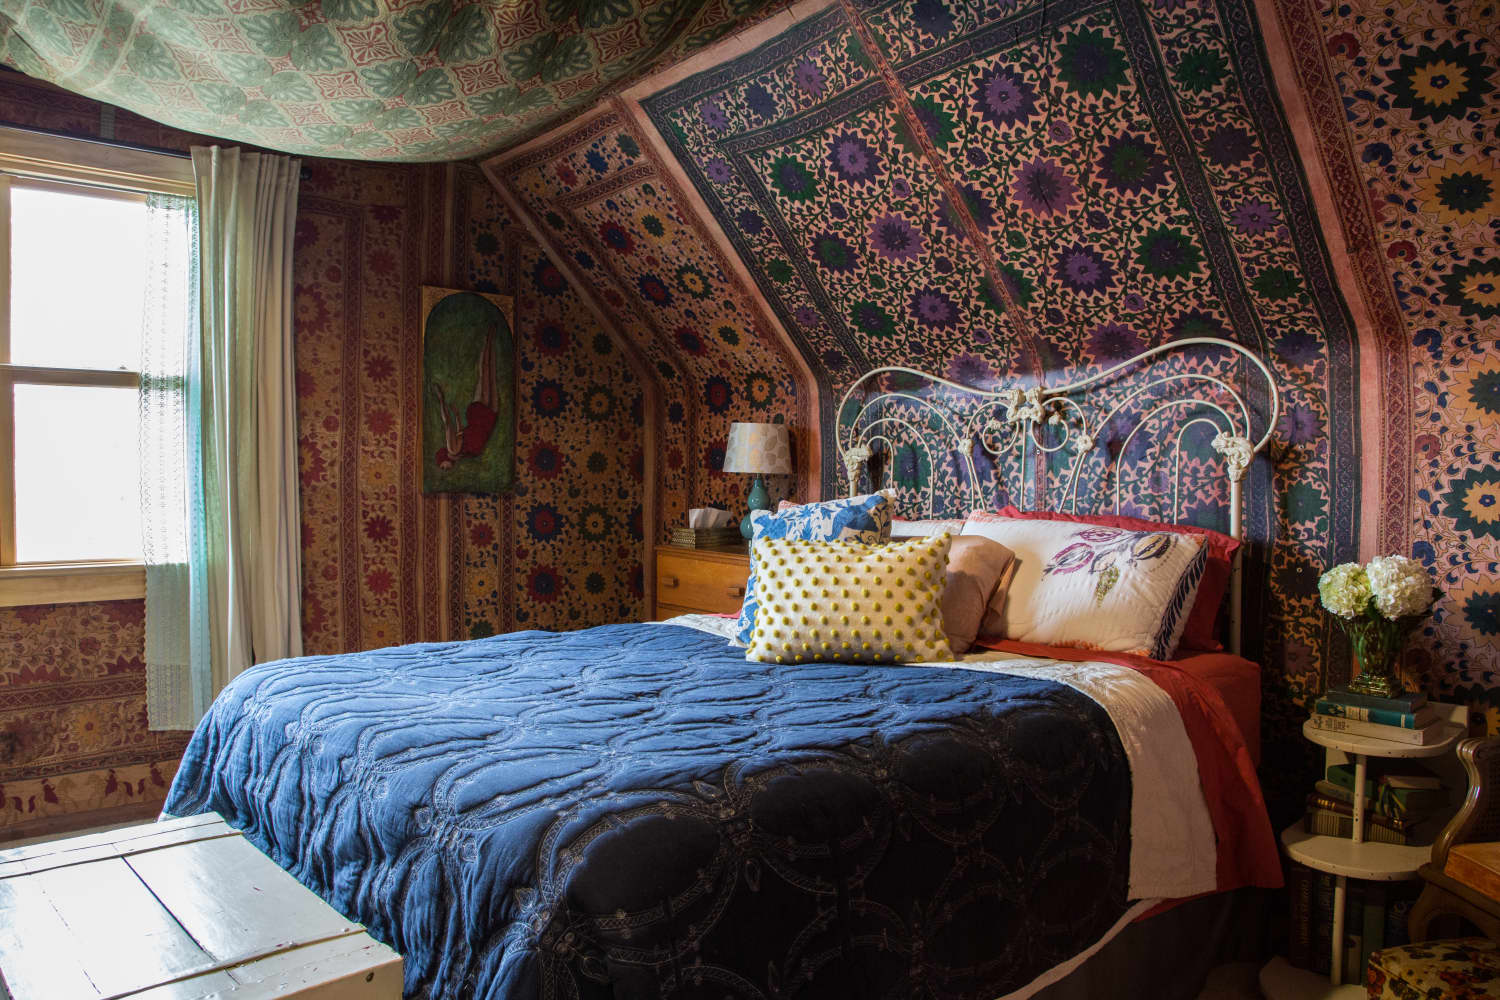 These Attic Bedrooms Are So Instagram-Worthy, You Might Just Want to Move Up